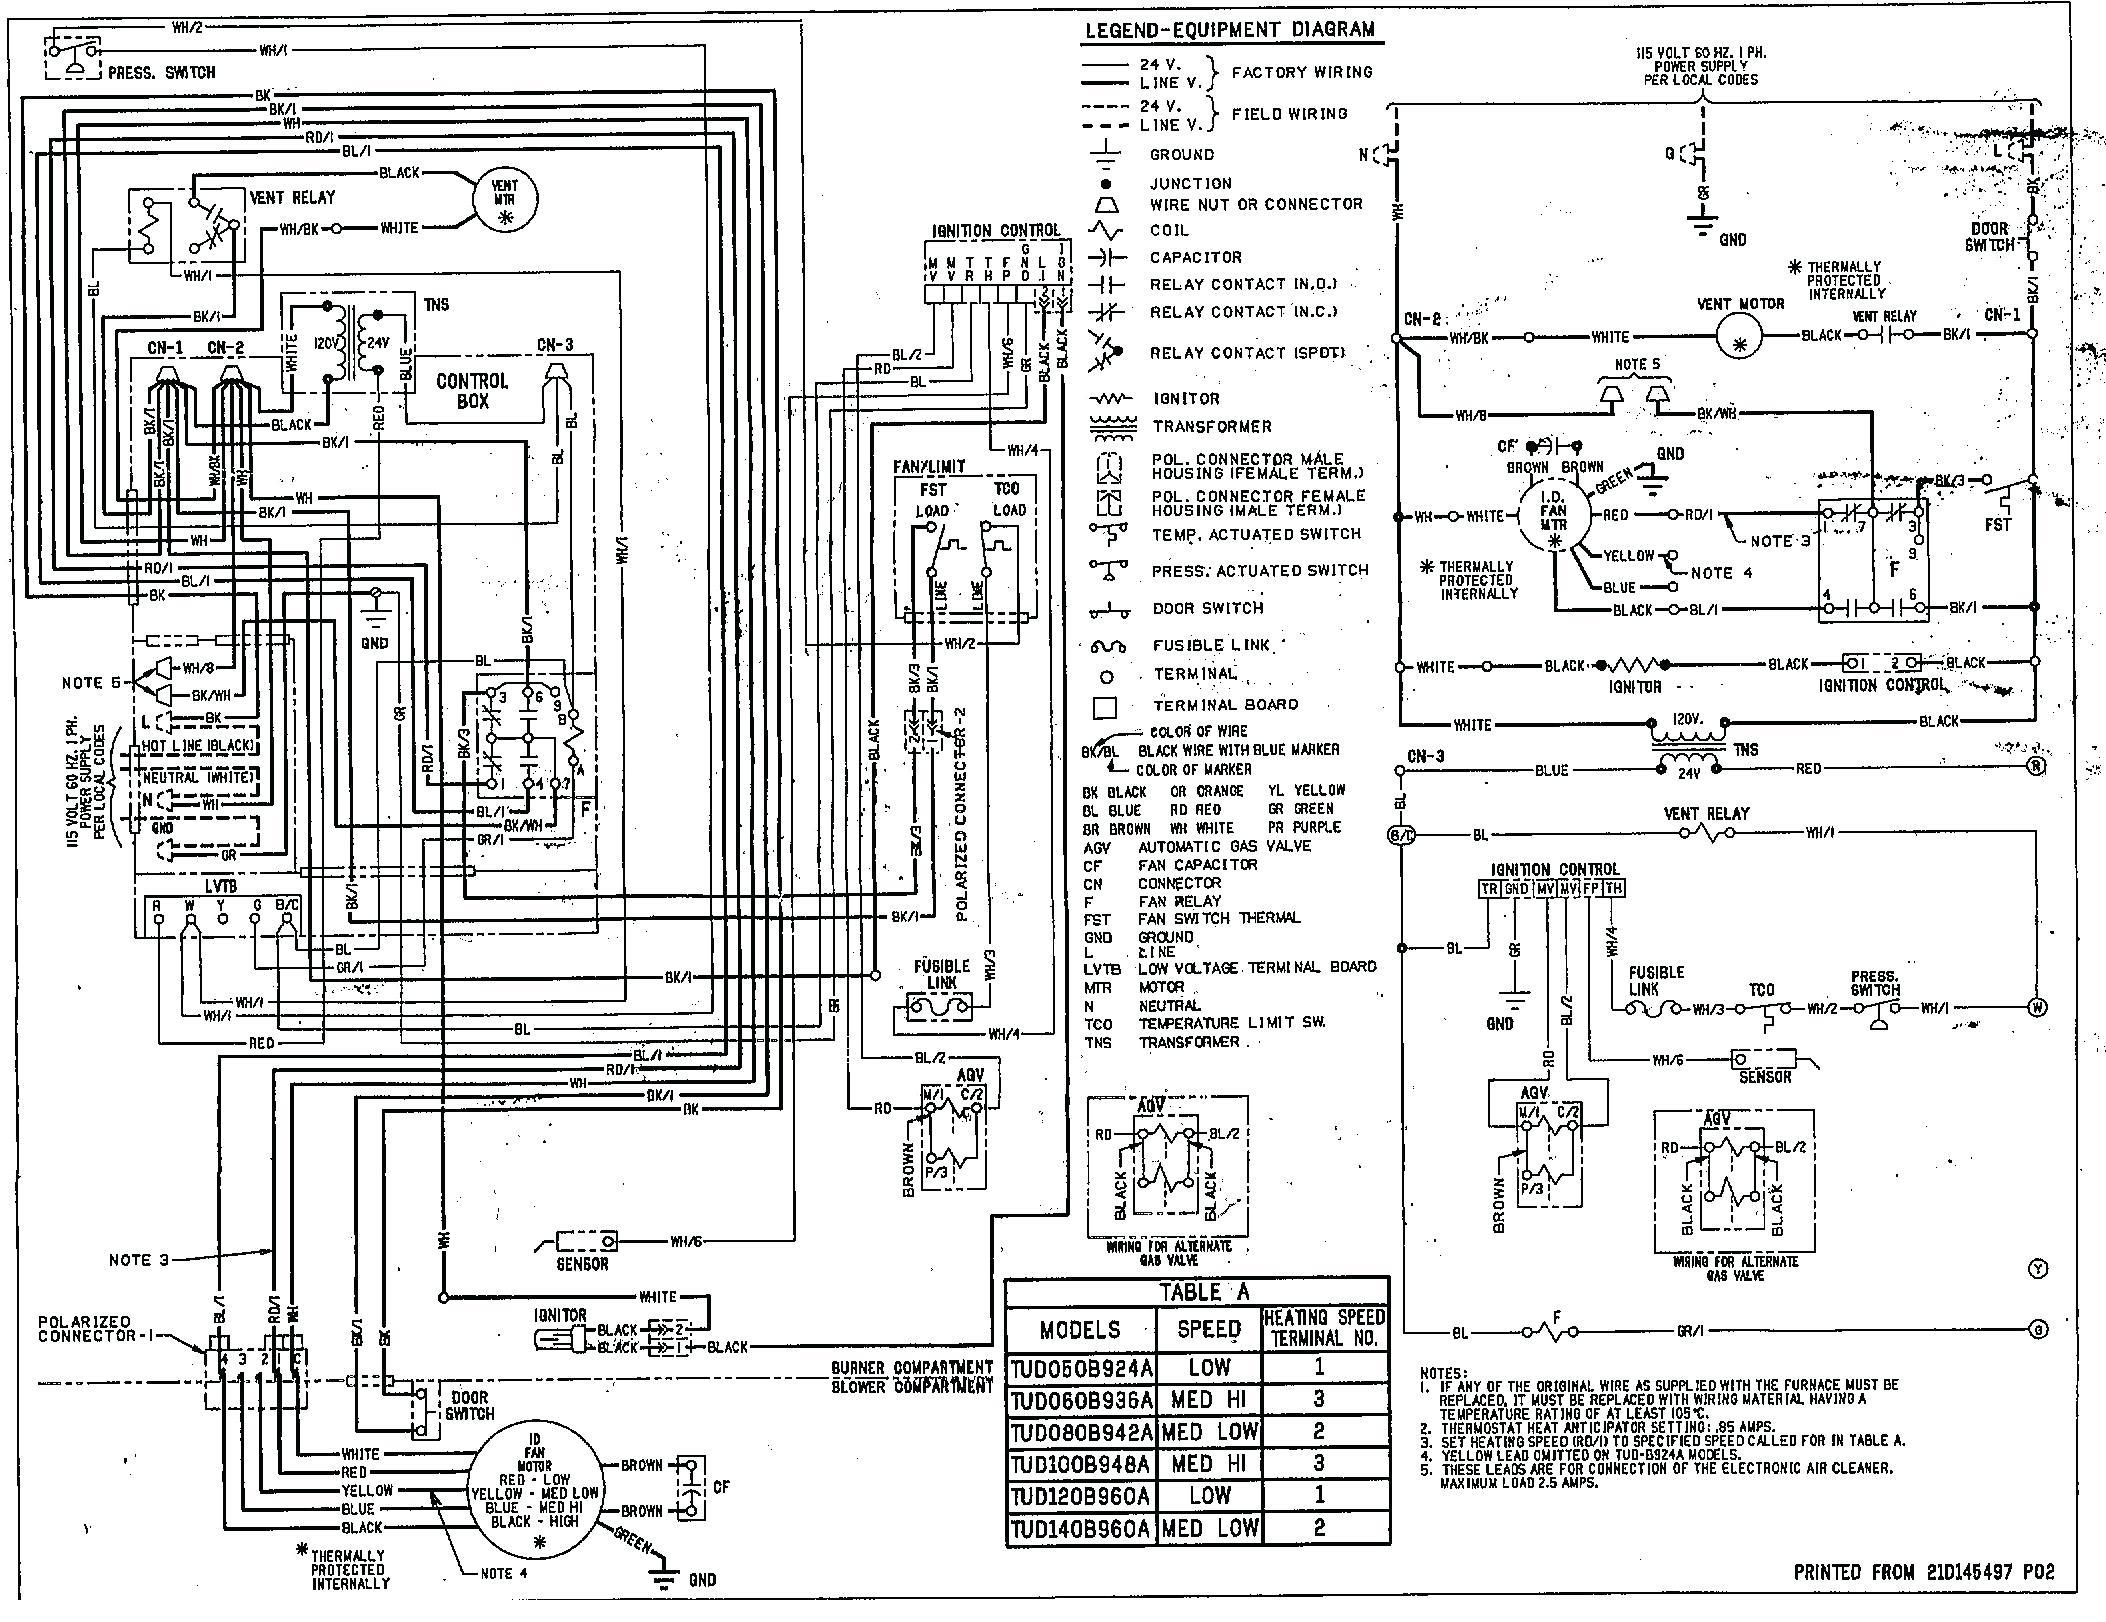 Diagram Hh84aa020 Circuit Control Board Wiring Diagram Full Version Hd Quality Wiring Diagram Trackdiagrams Agorasup Fr